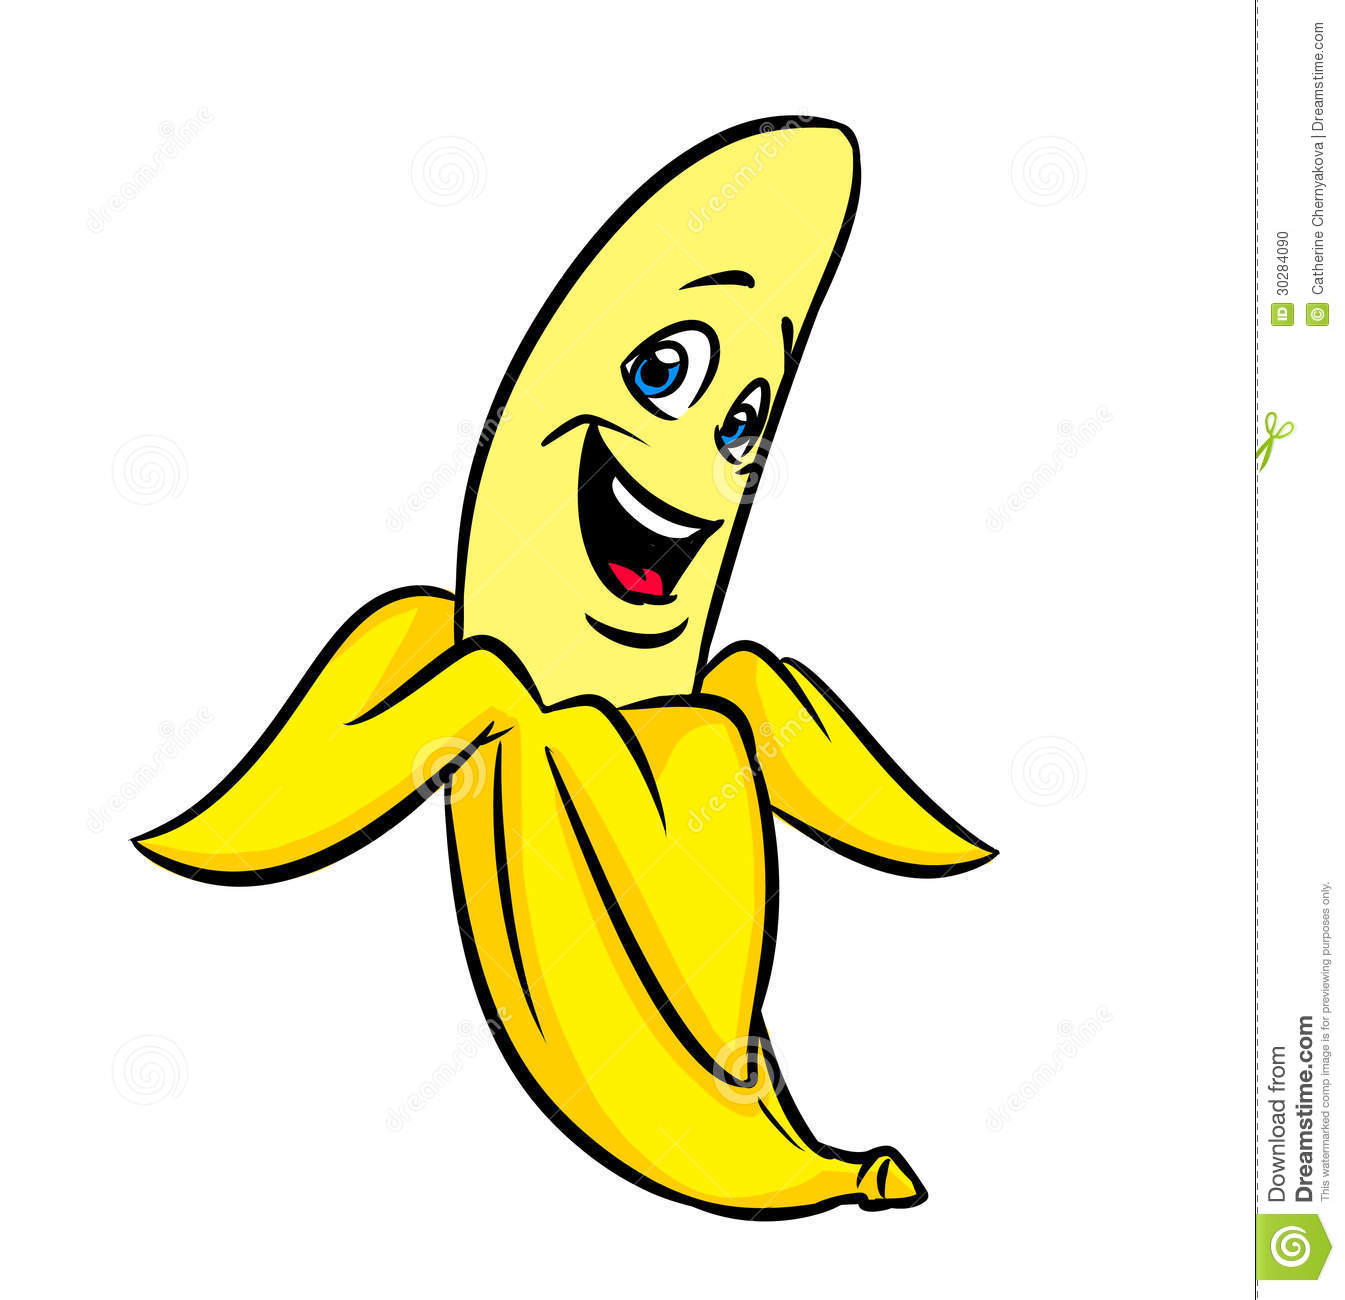 Banana clipart cute.